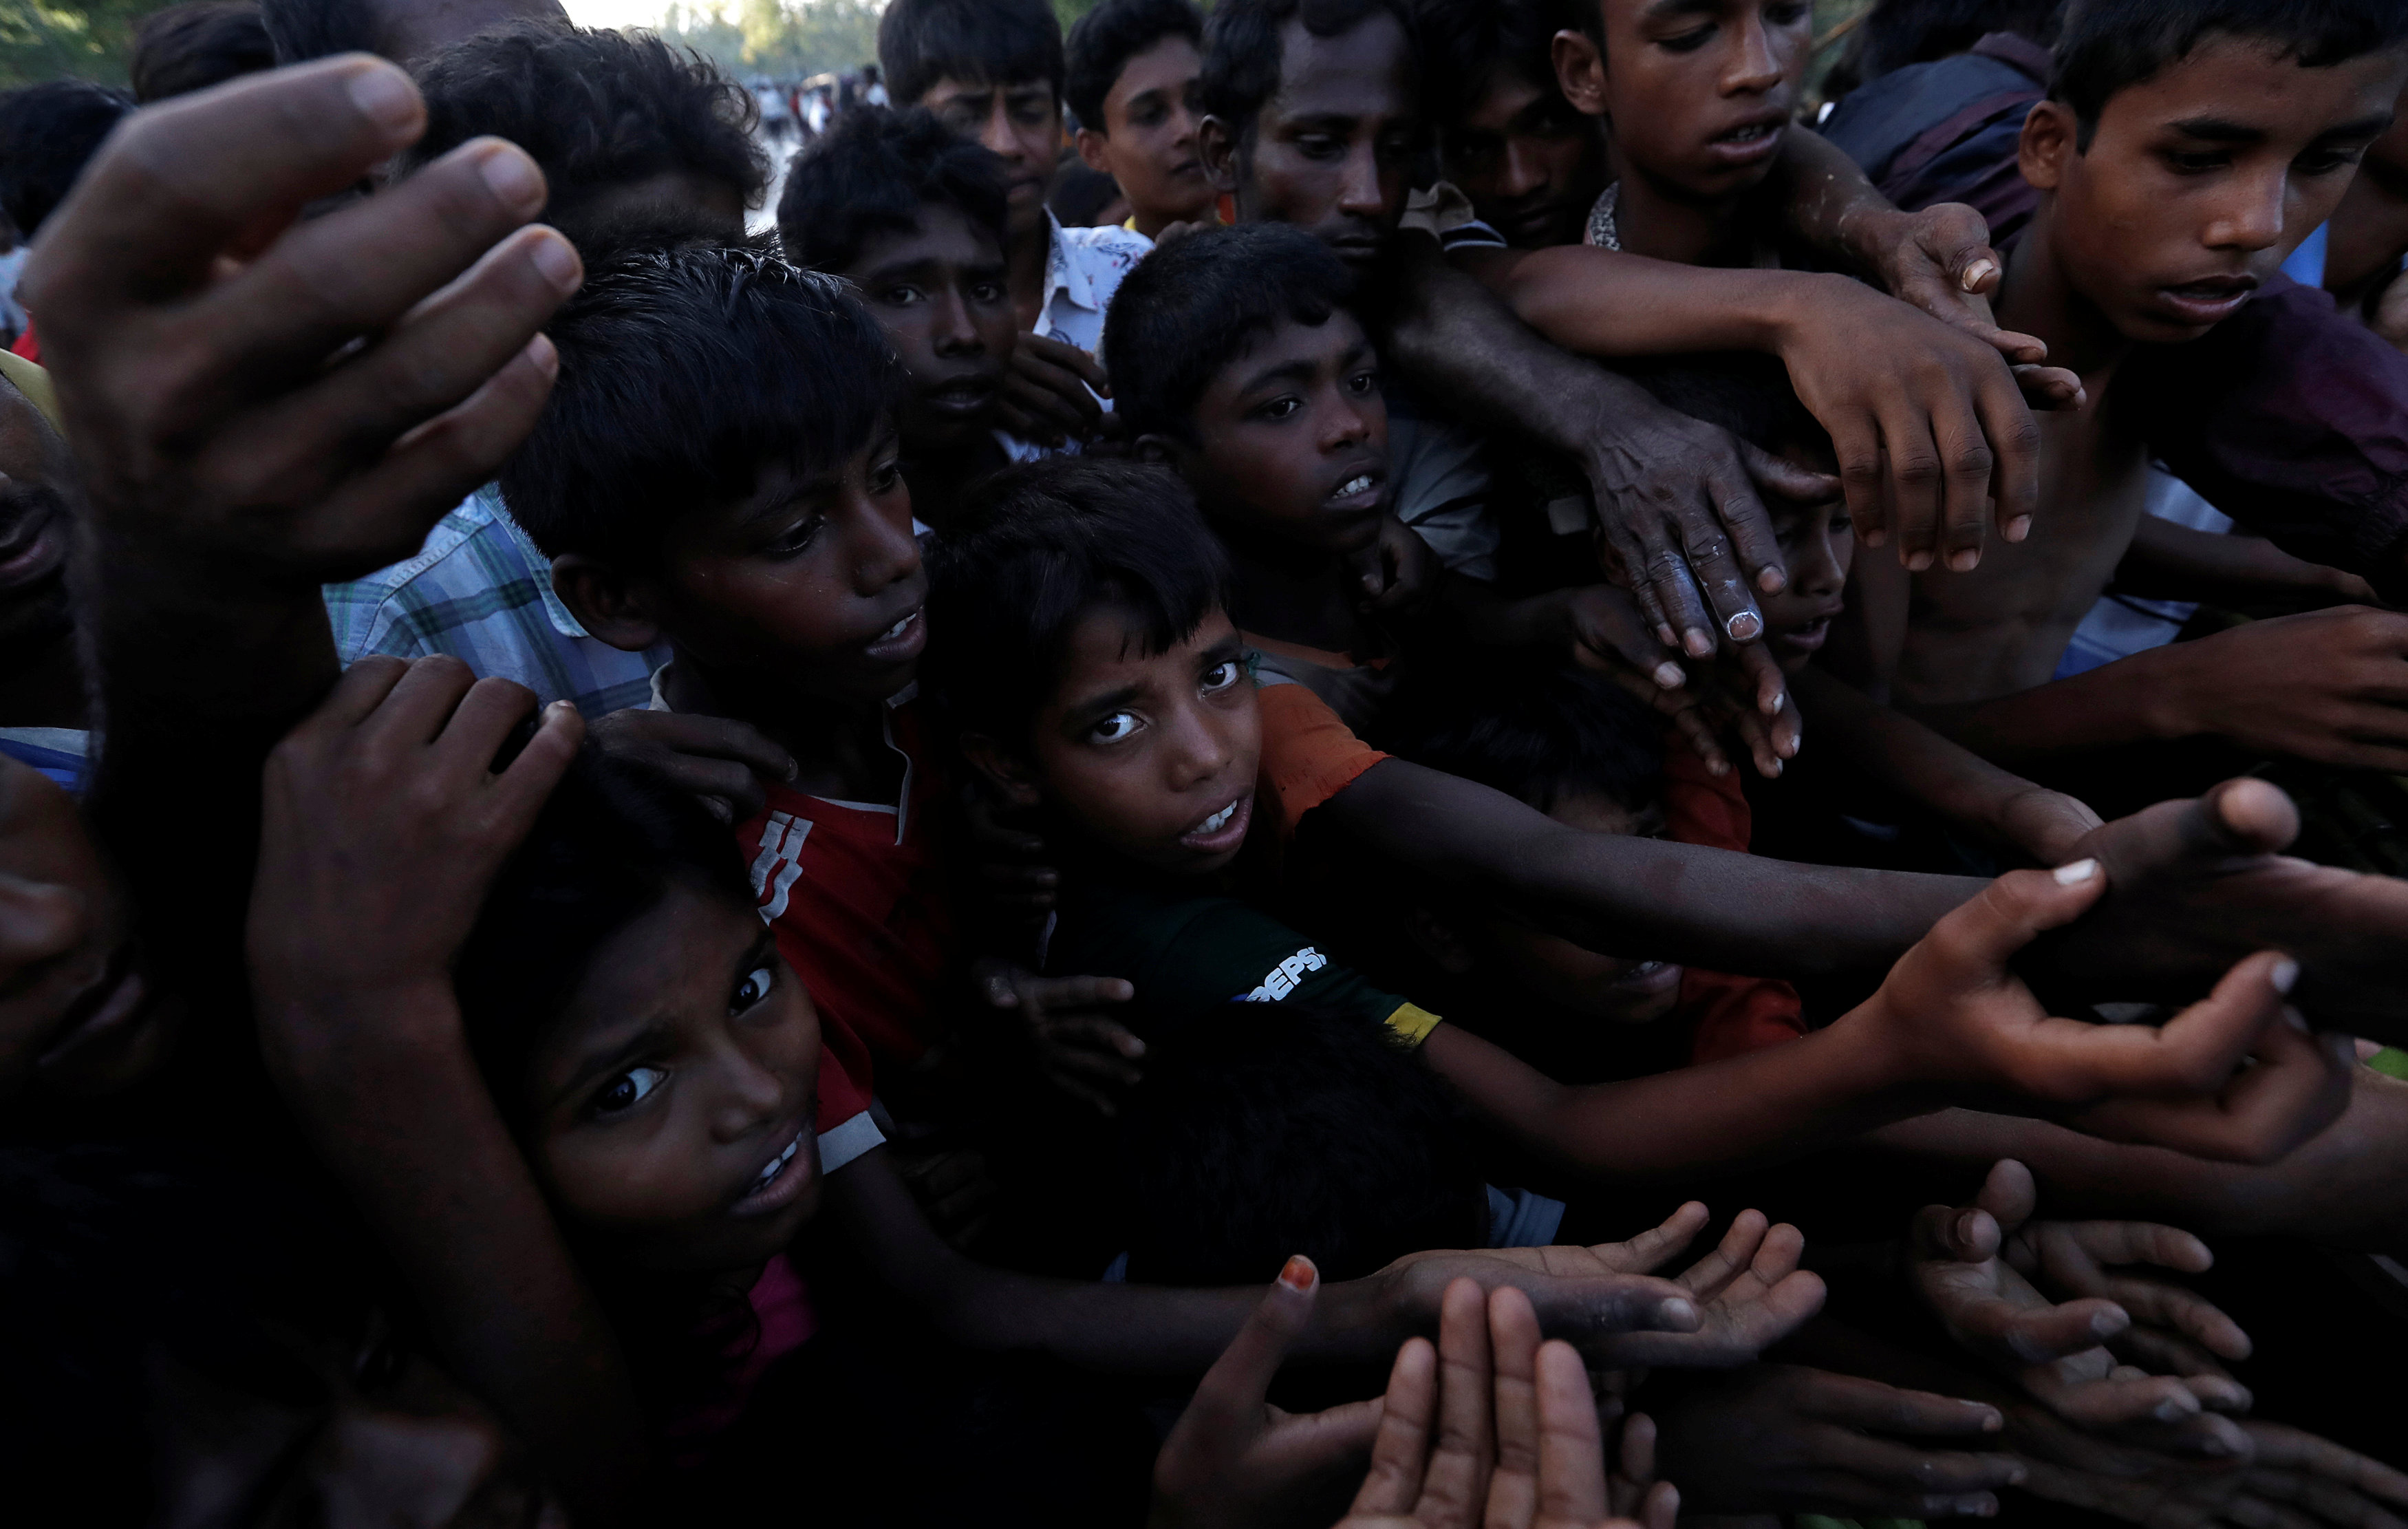 People reach out during the distribution of bananas in a Rohingya refugee camp in Cox's Bazar, Bangladesh, September 17, 2017.